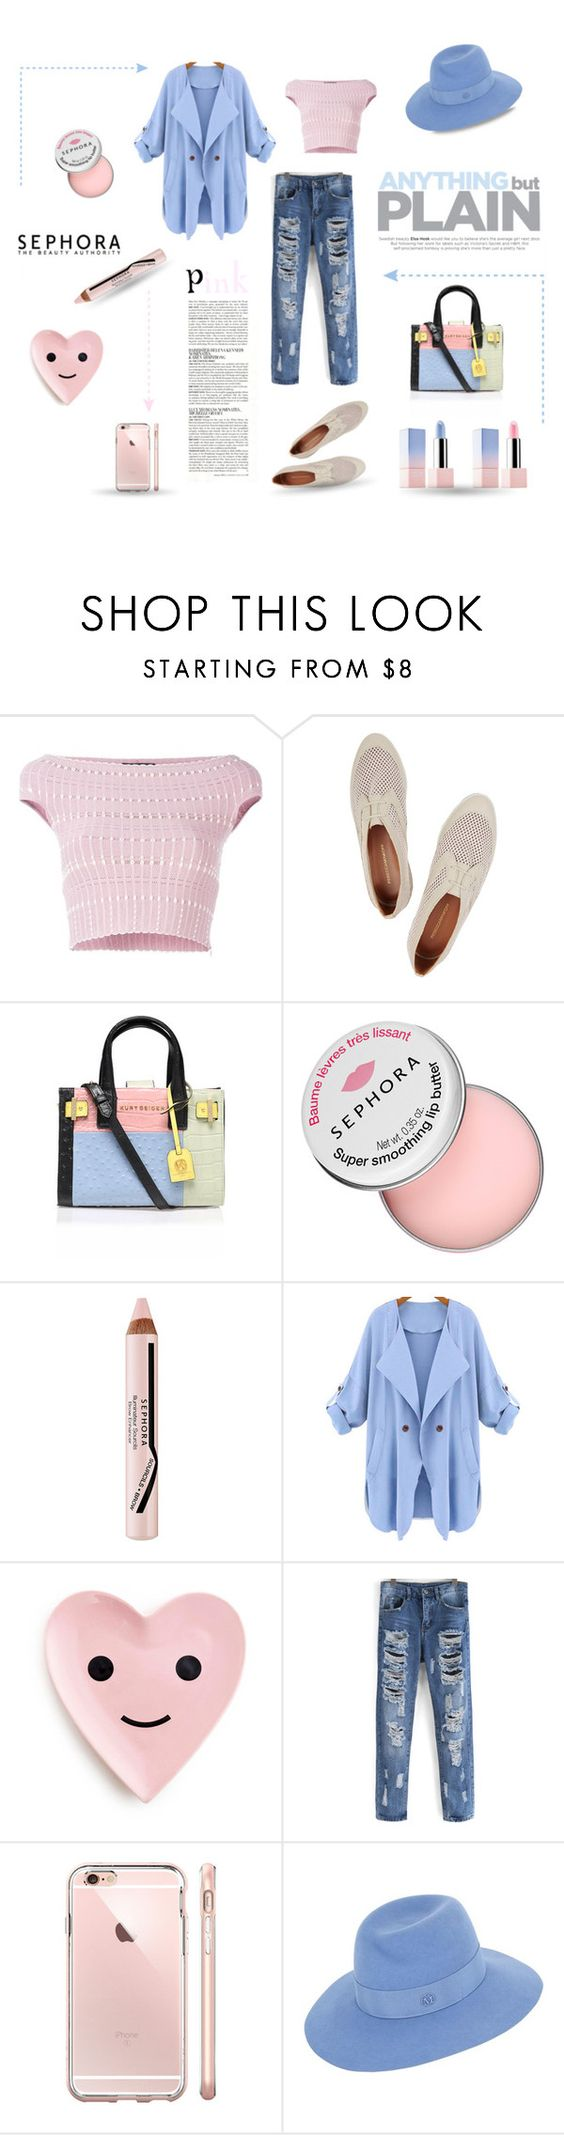 """Pink and Blue"" by justjules2332 ❤ liked on Polyvore featuring Alexander McQueen, Rebecca Minkoff, Kurt Geiger, McGinn, Sephora Collection, Maison Michel, Beauty, rebeccaminkoff, sephora and pinkandblue"